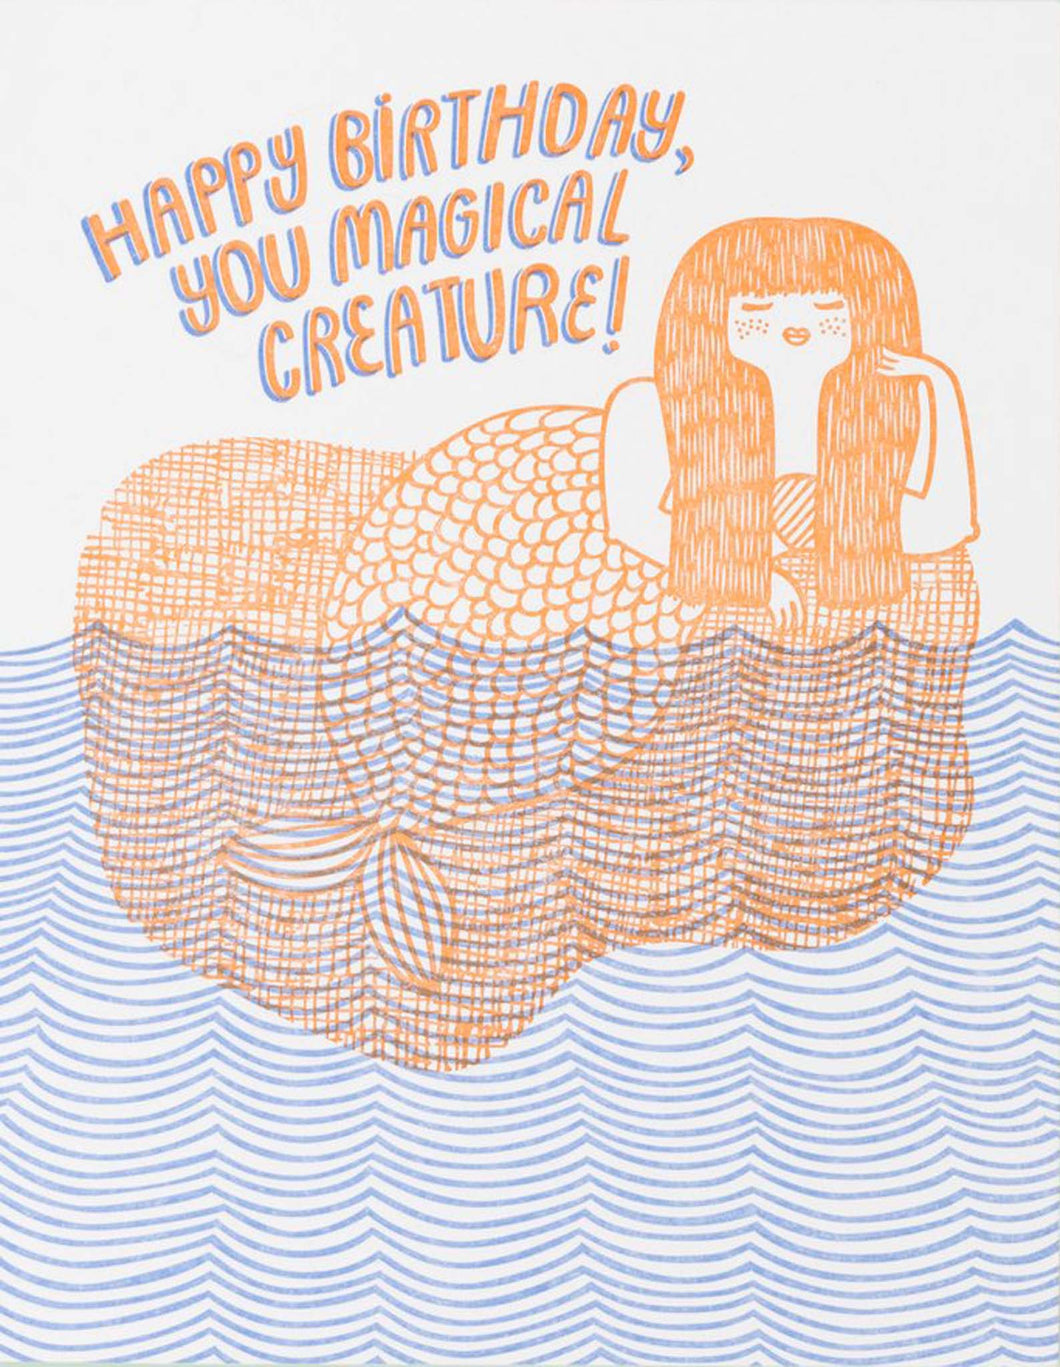 Happy Birthday, You Magical Creature! card